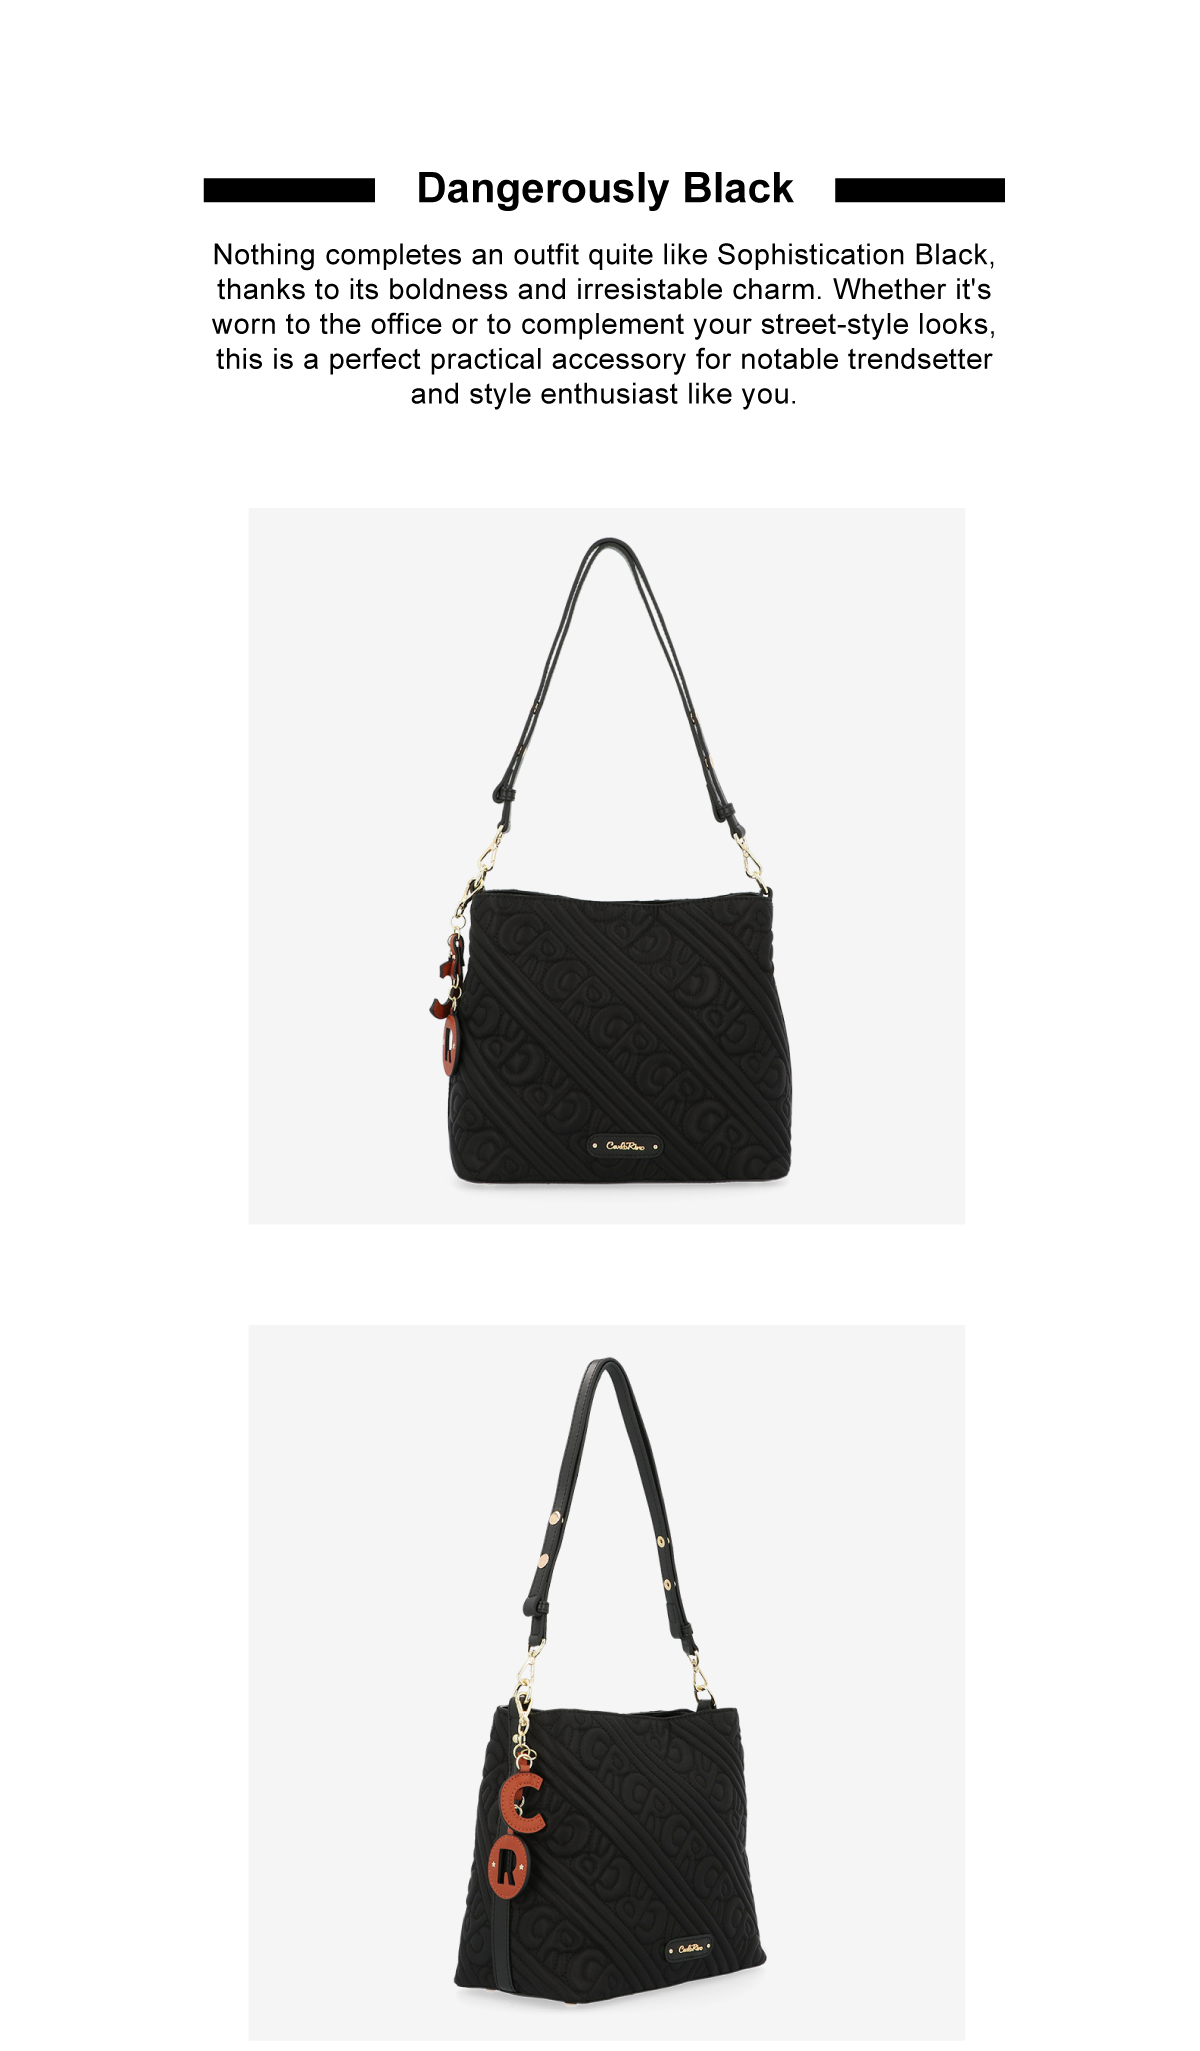 0305135J 003 2 - Dangerously Black Shoulder Bag